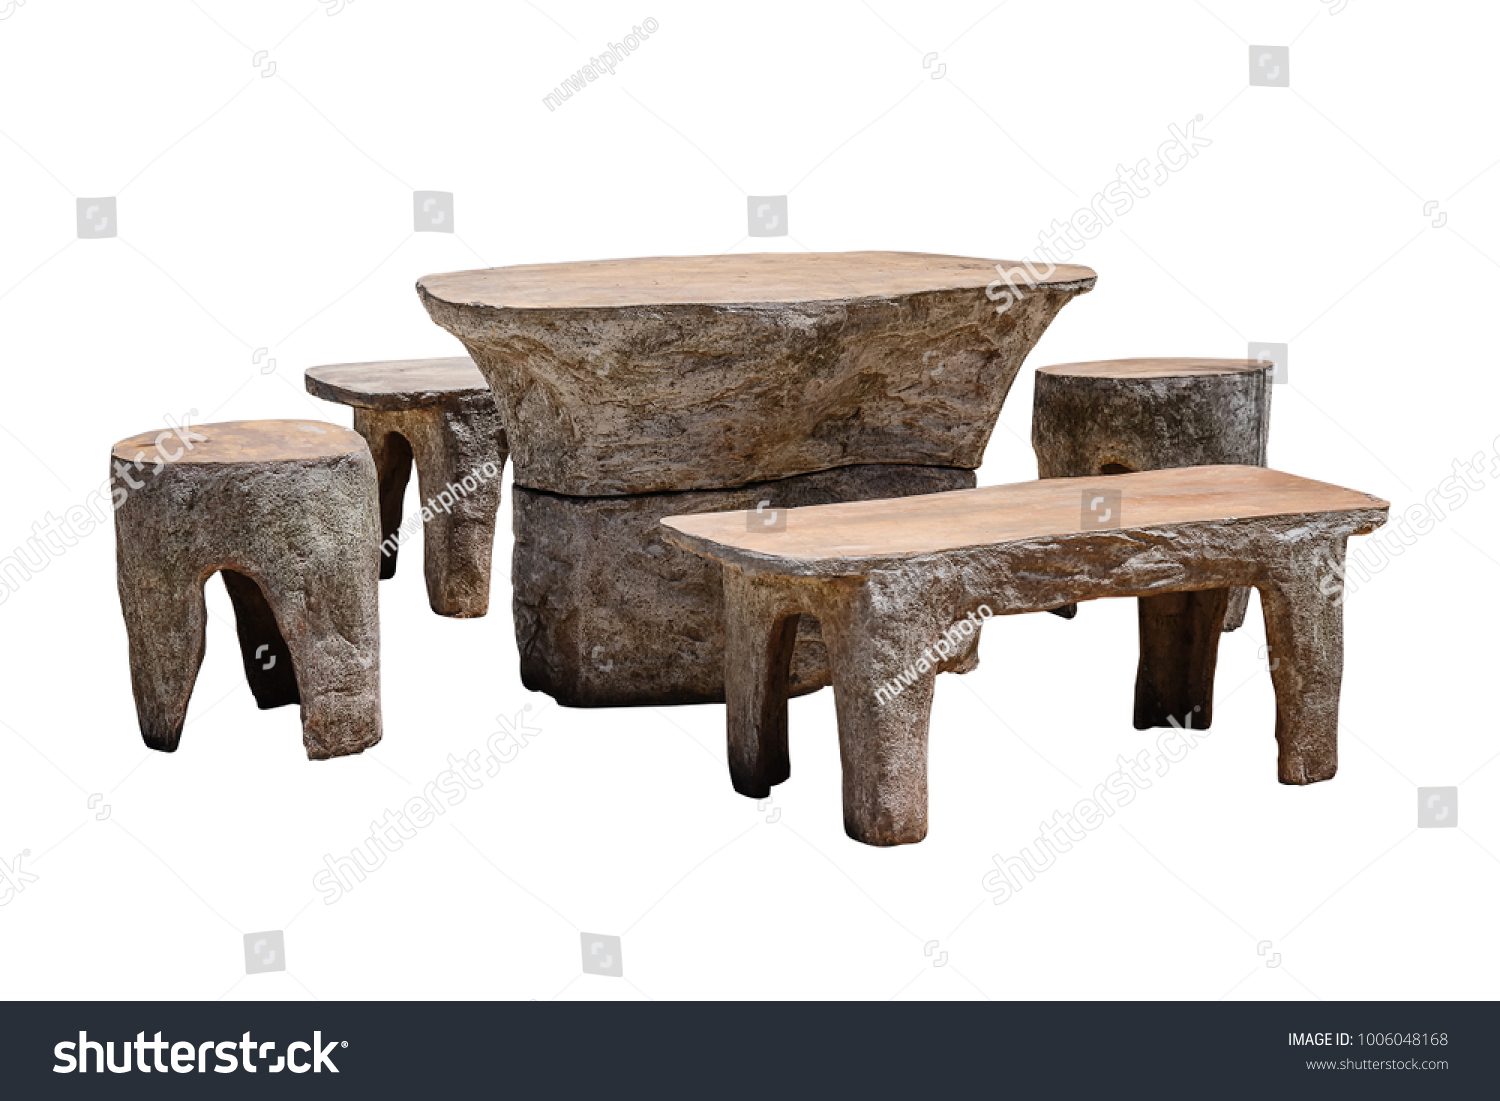 sc 1 st  Shutterstock & Set Stone Table Bench Isolated On Stock Photo 1006048168 - Shutterstock